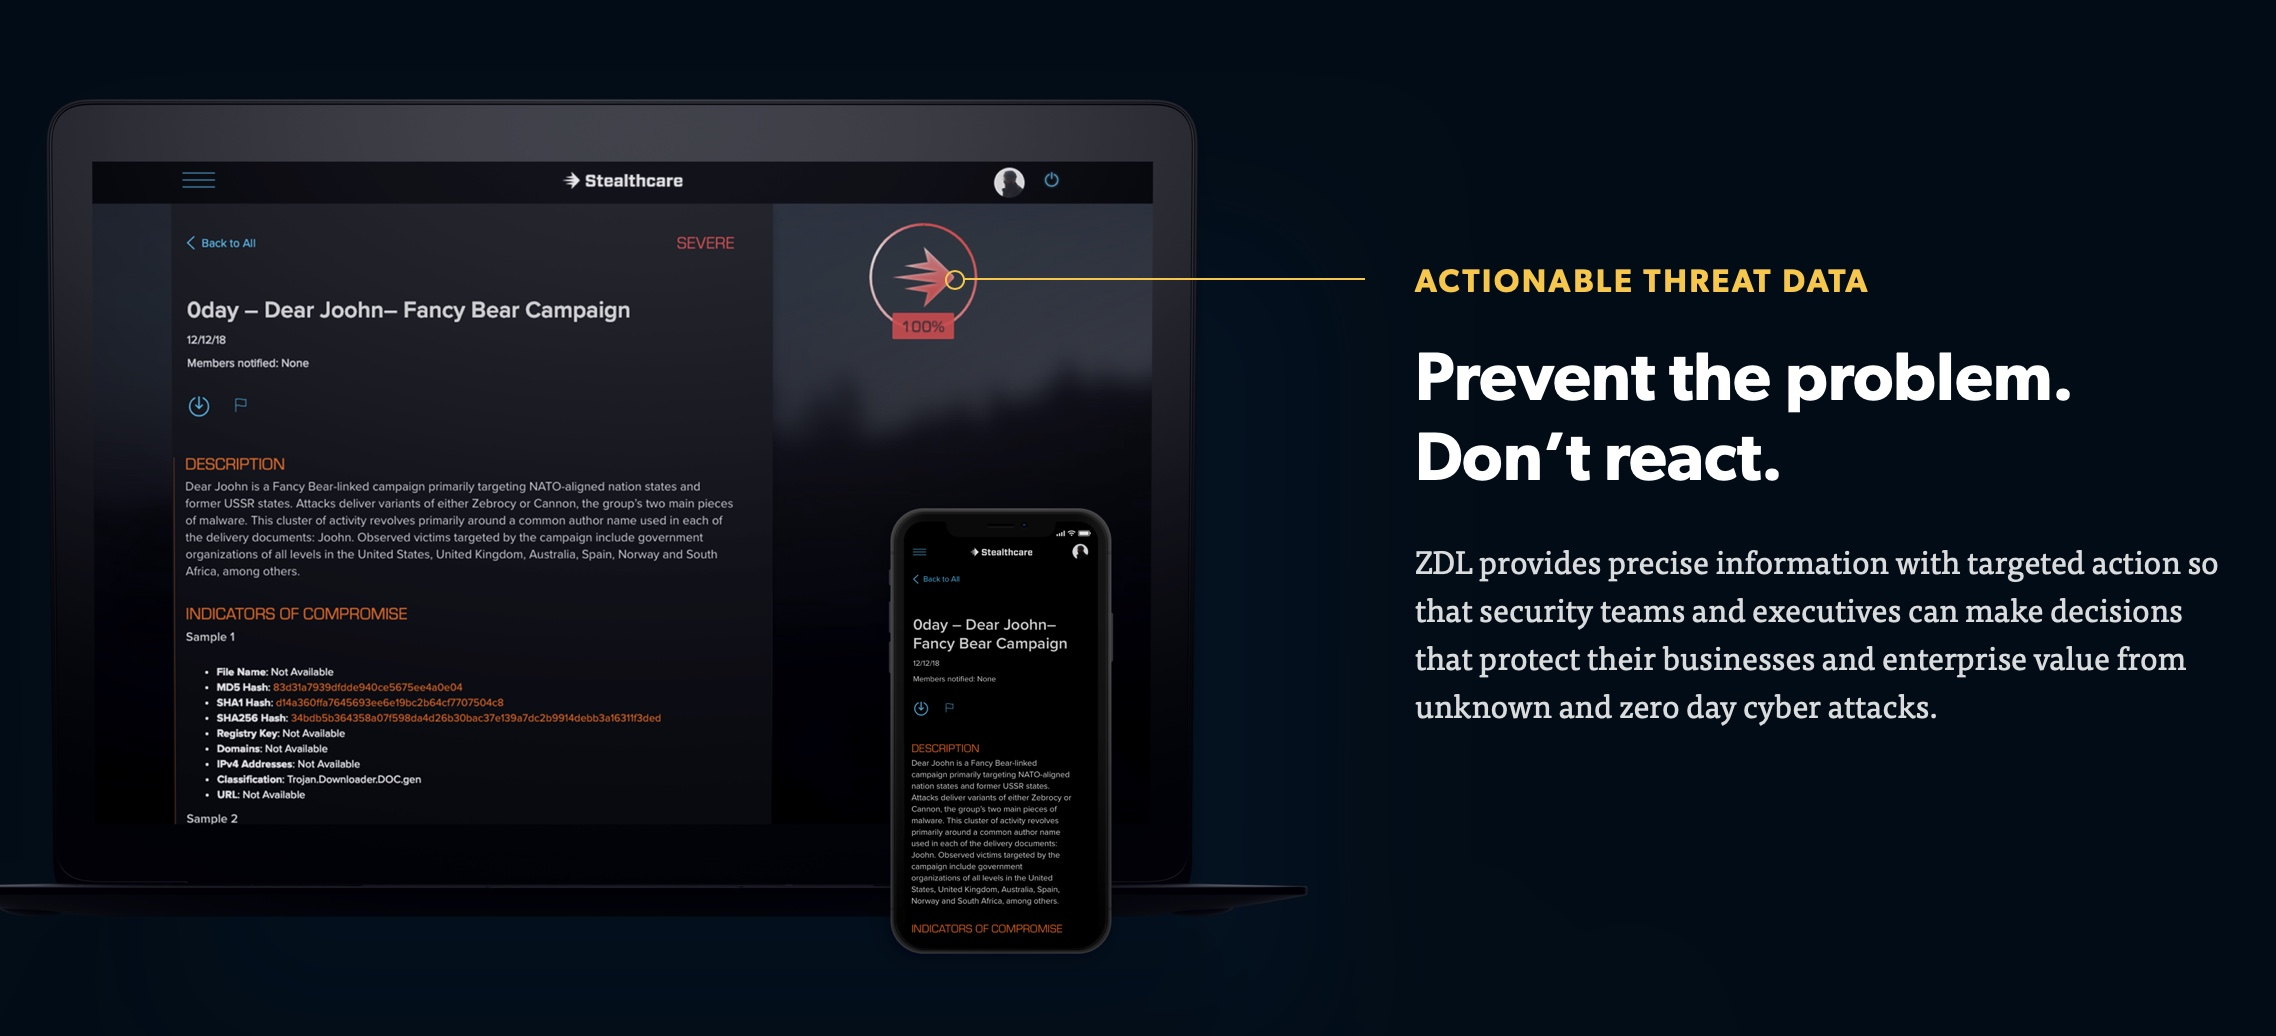 Stealthcare launches new Website to showcase Zero Day Live threat